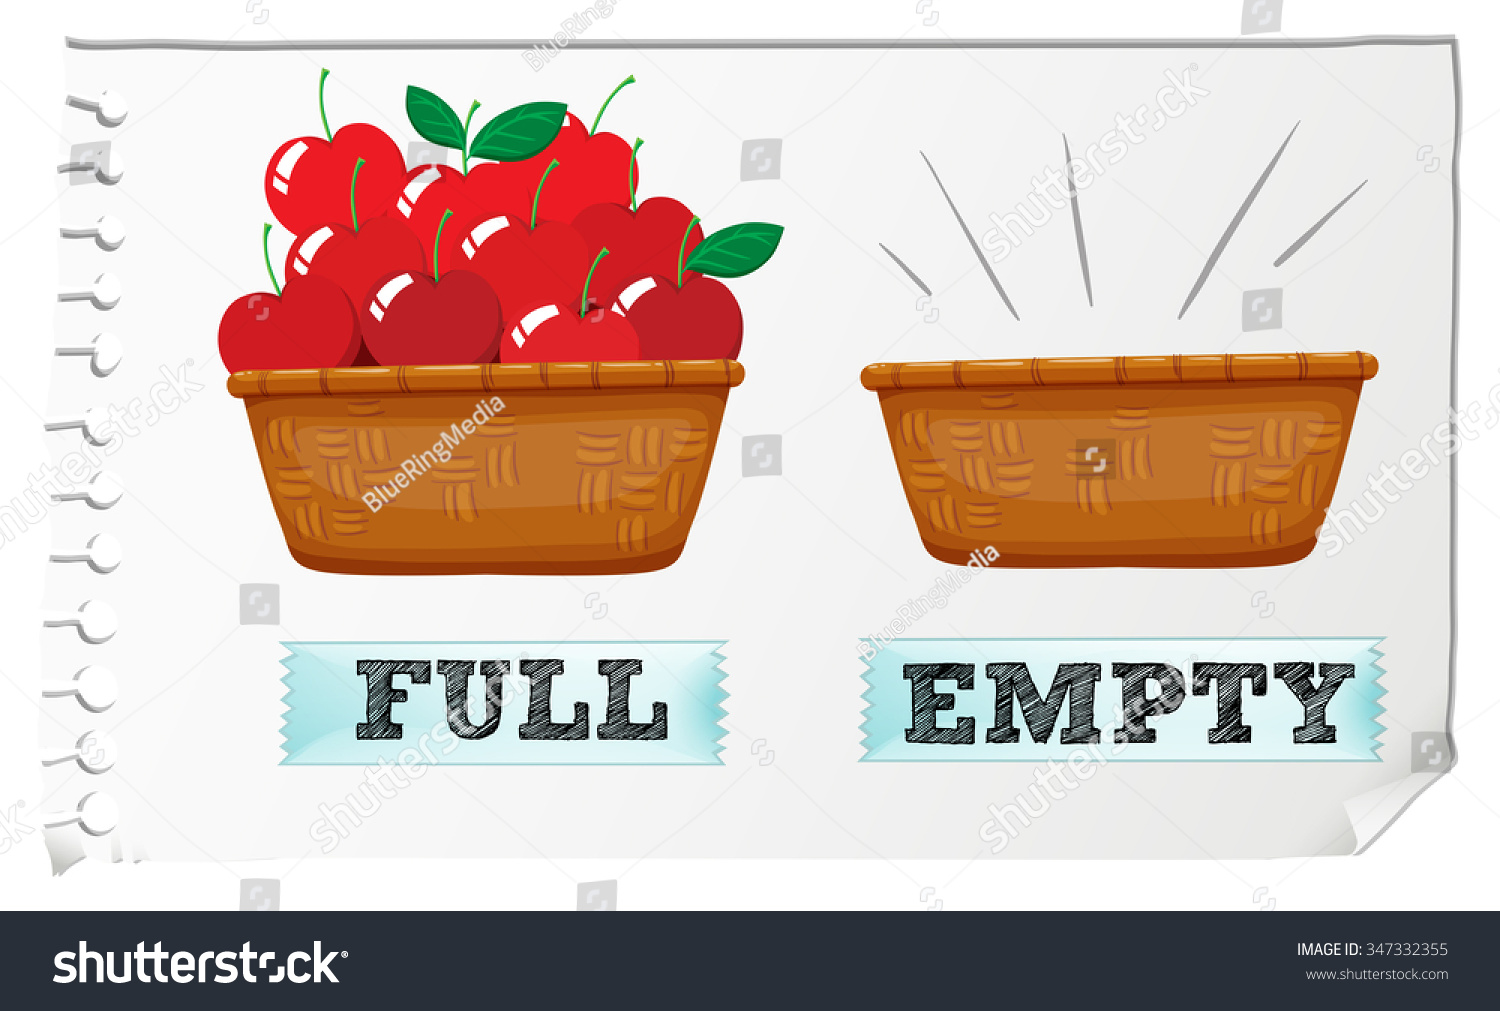 Worksheet Full And Empty opposite adjective full empty illustration stock vector 347332355 and illustration